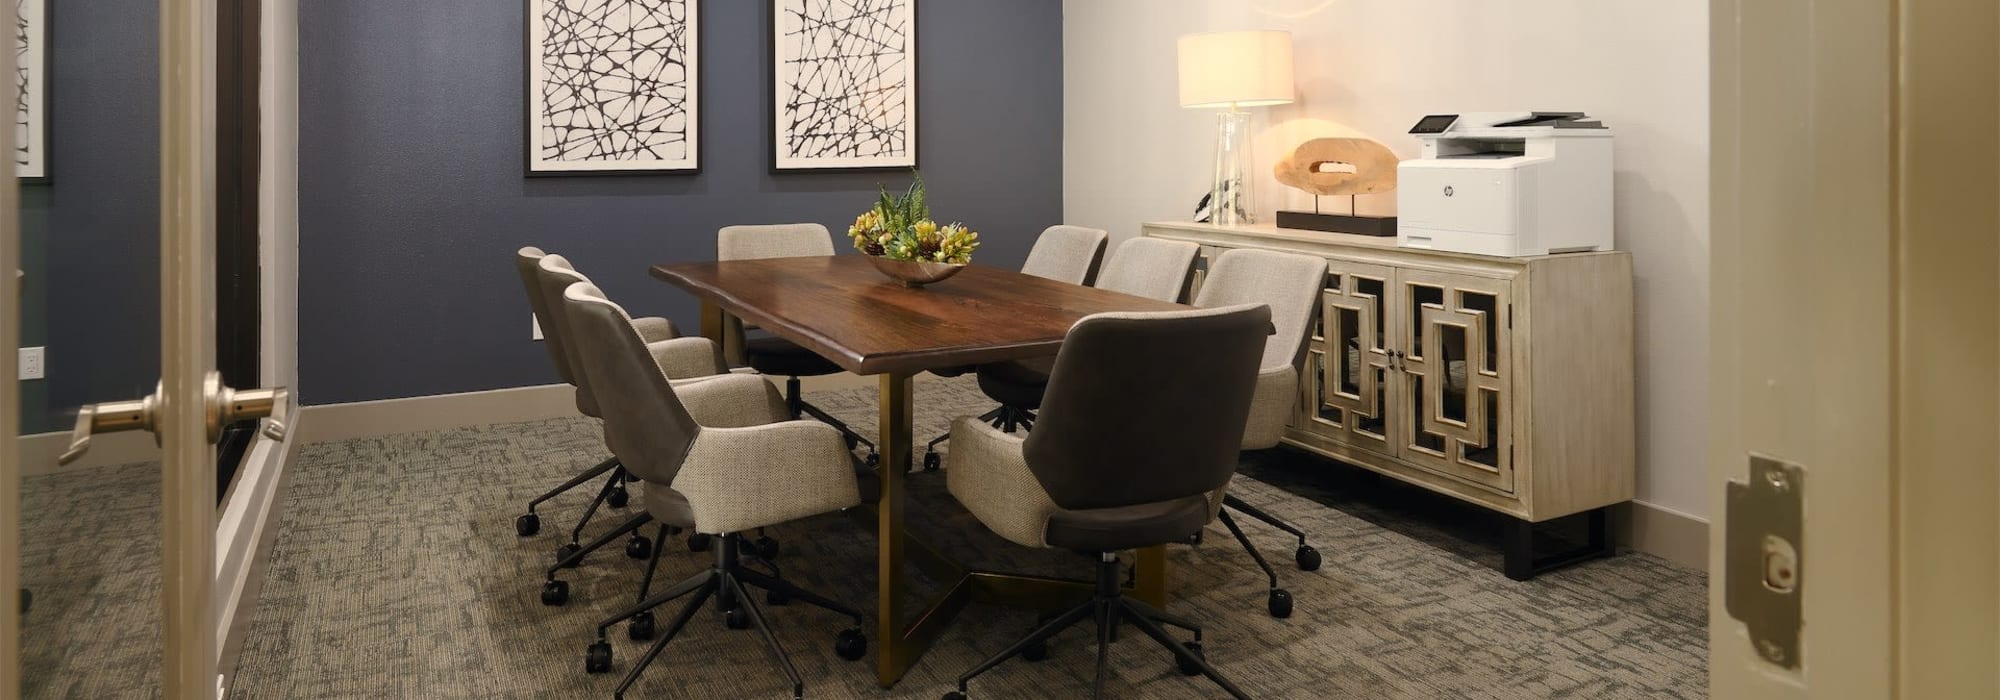 Conference table for residents to use at Seville Uptown in Dallas, Texas